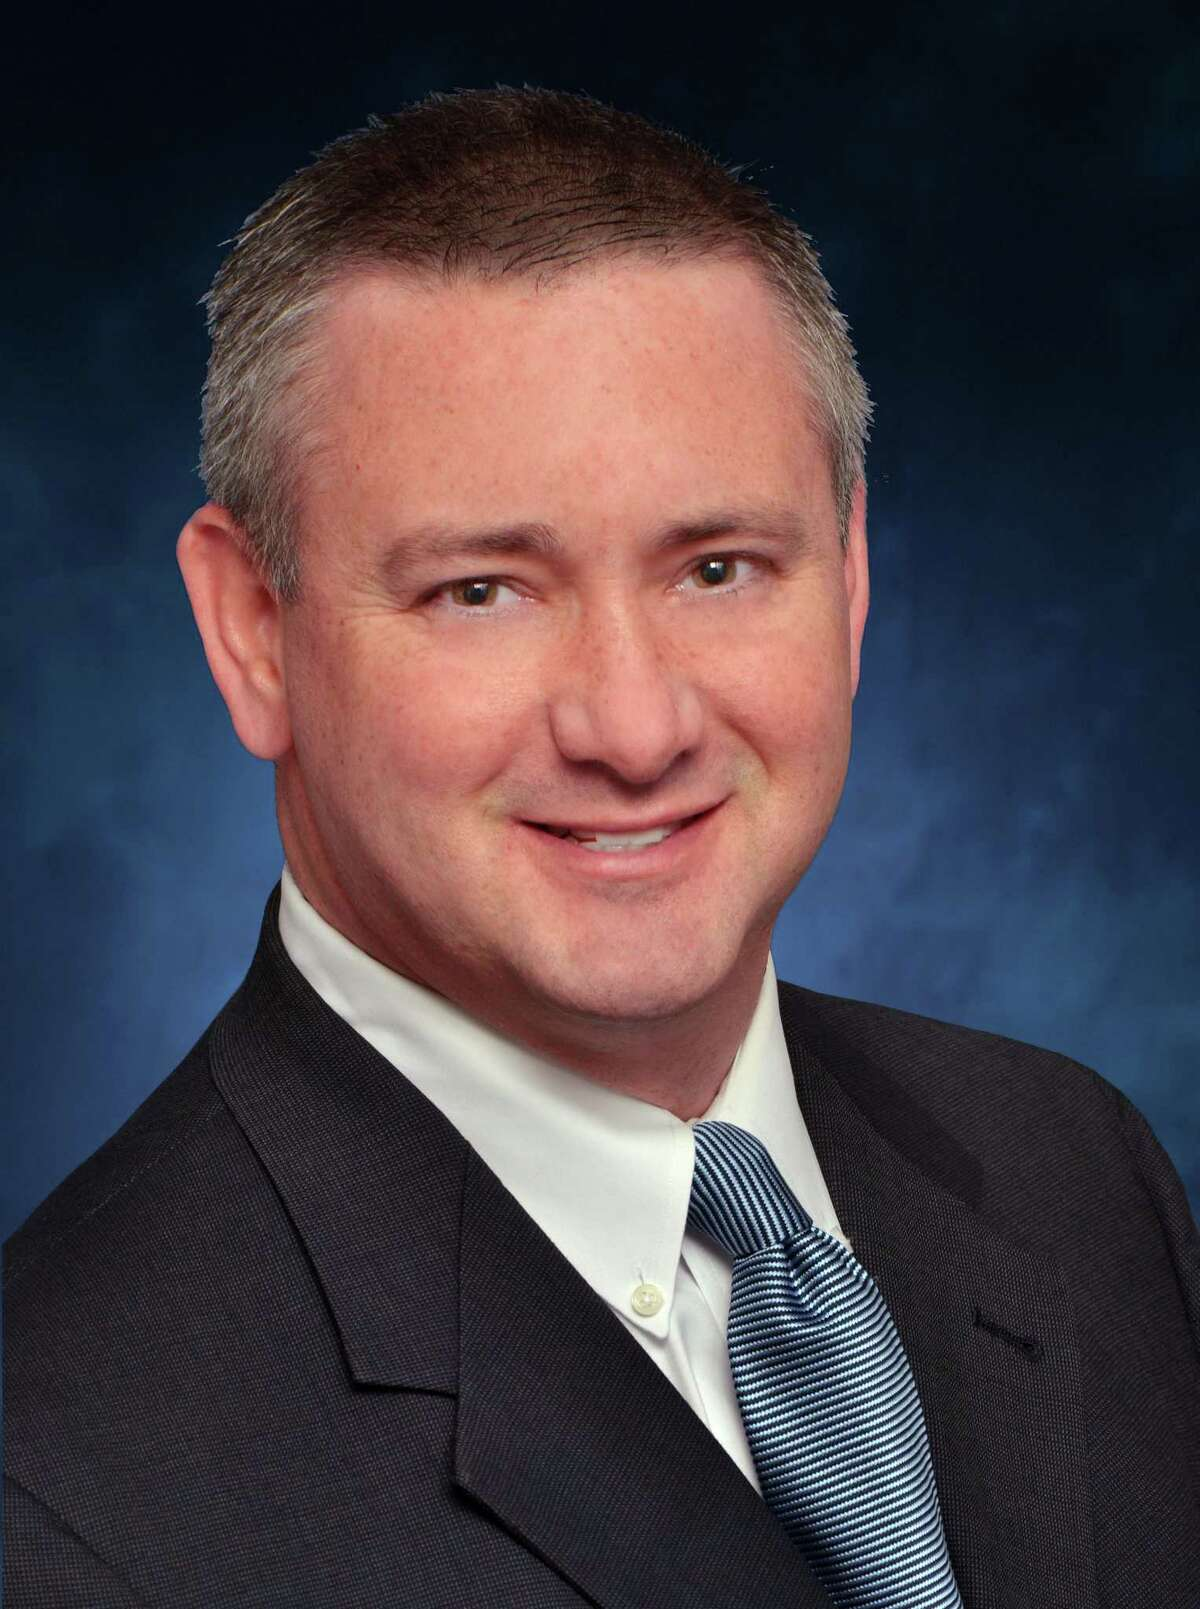 CBRE has appointed Chris Bonetolead project management as senior managing director for the Texas-Oklahoma region.